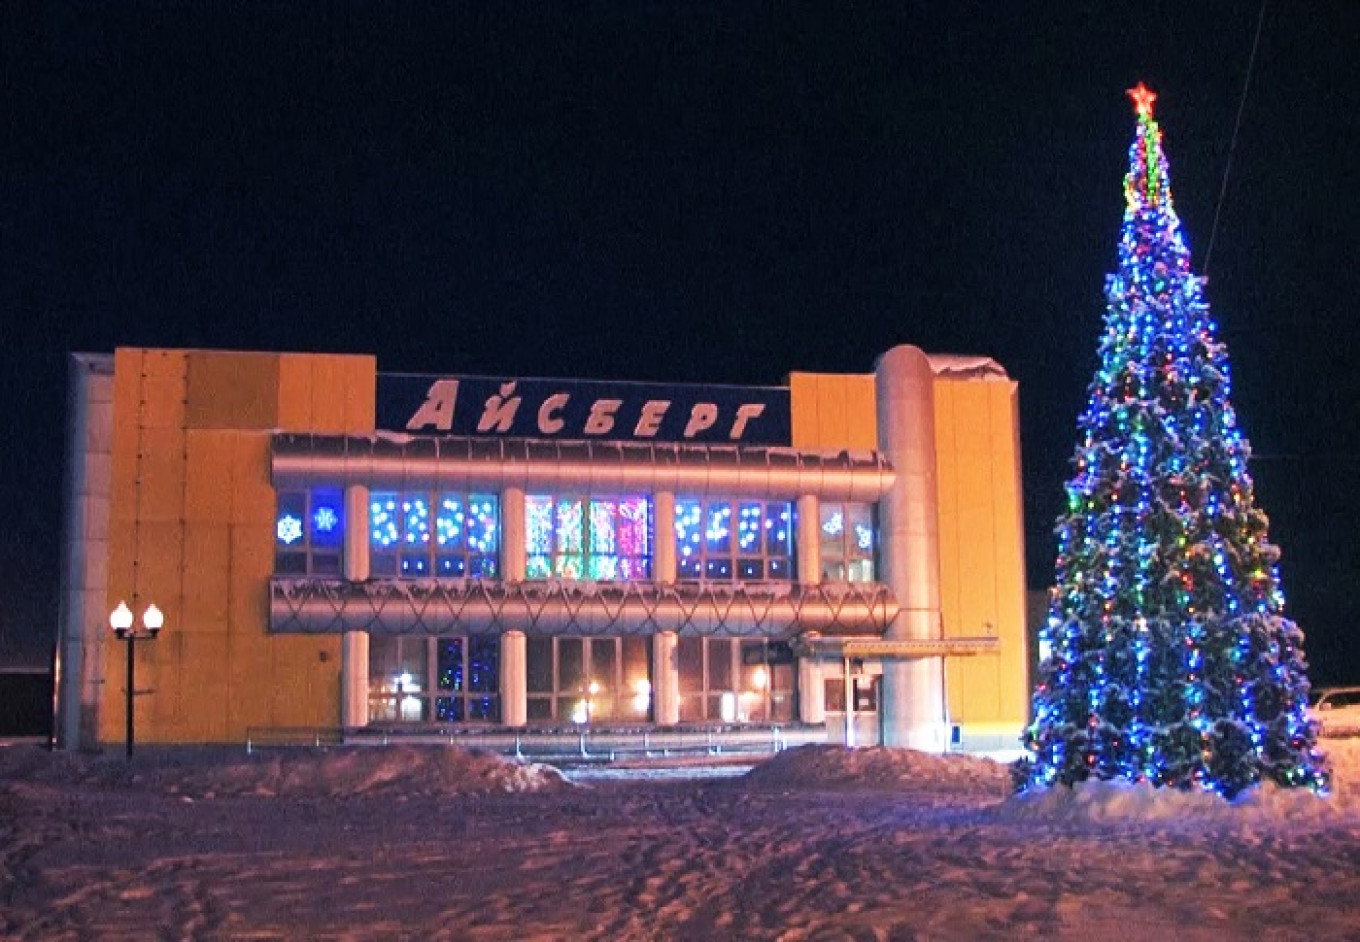 The New Year's tree in Pevek was lit up on Dec. 19th using nuclear energy from the Akademik Lomonosov.				 				Rosatom